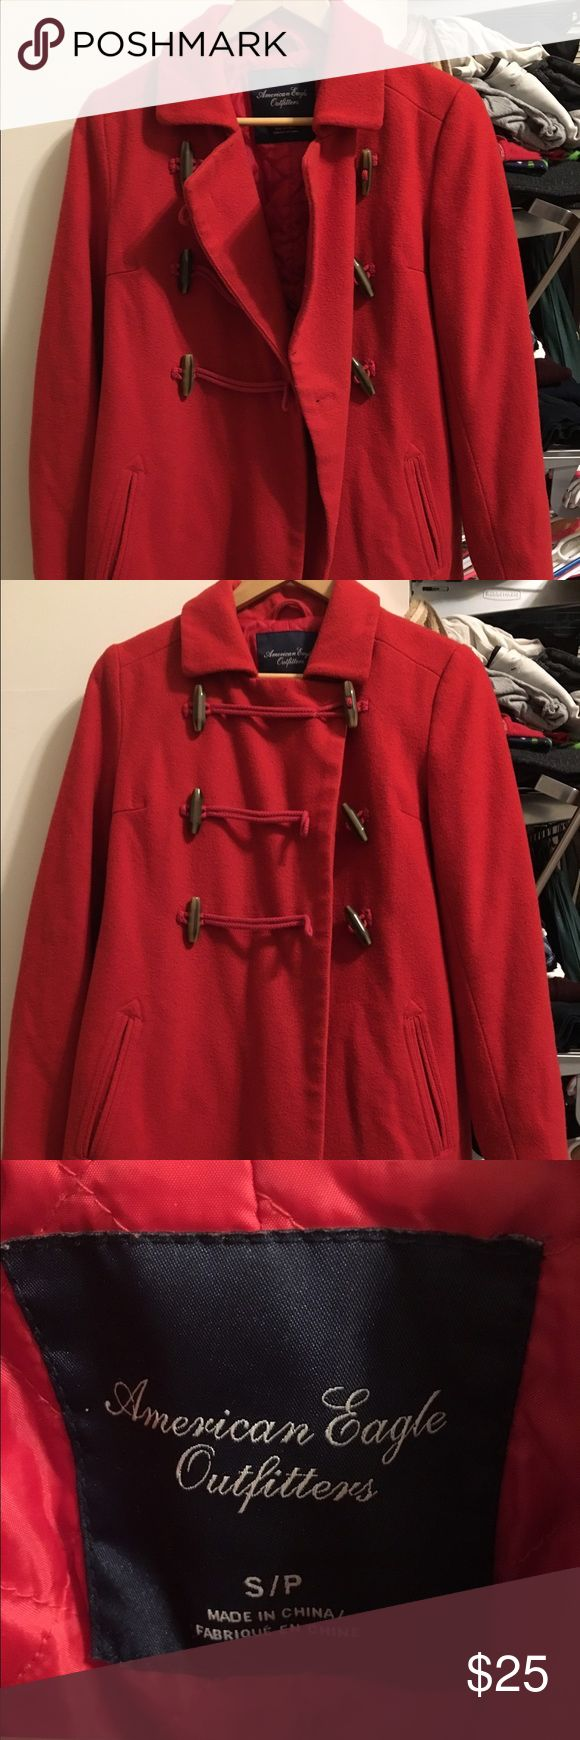 Women parka Like new condition. Only wear once American Eagle Outfitters Jackets & Coats